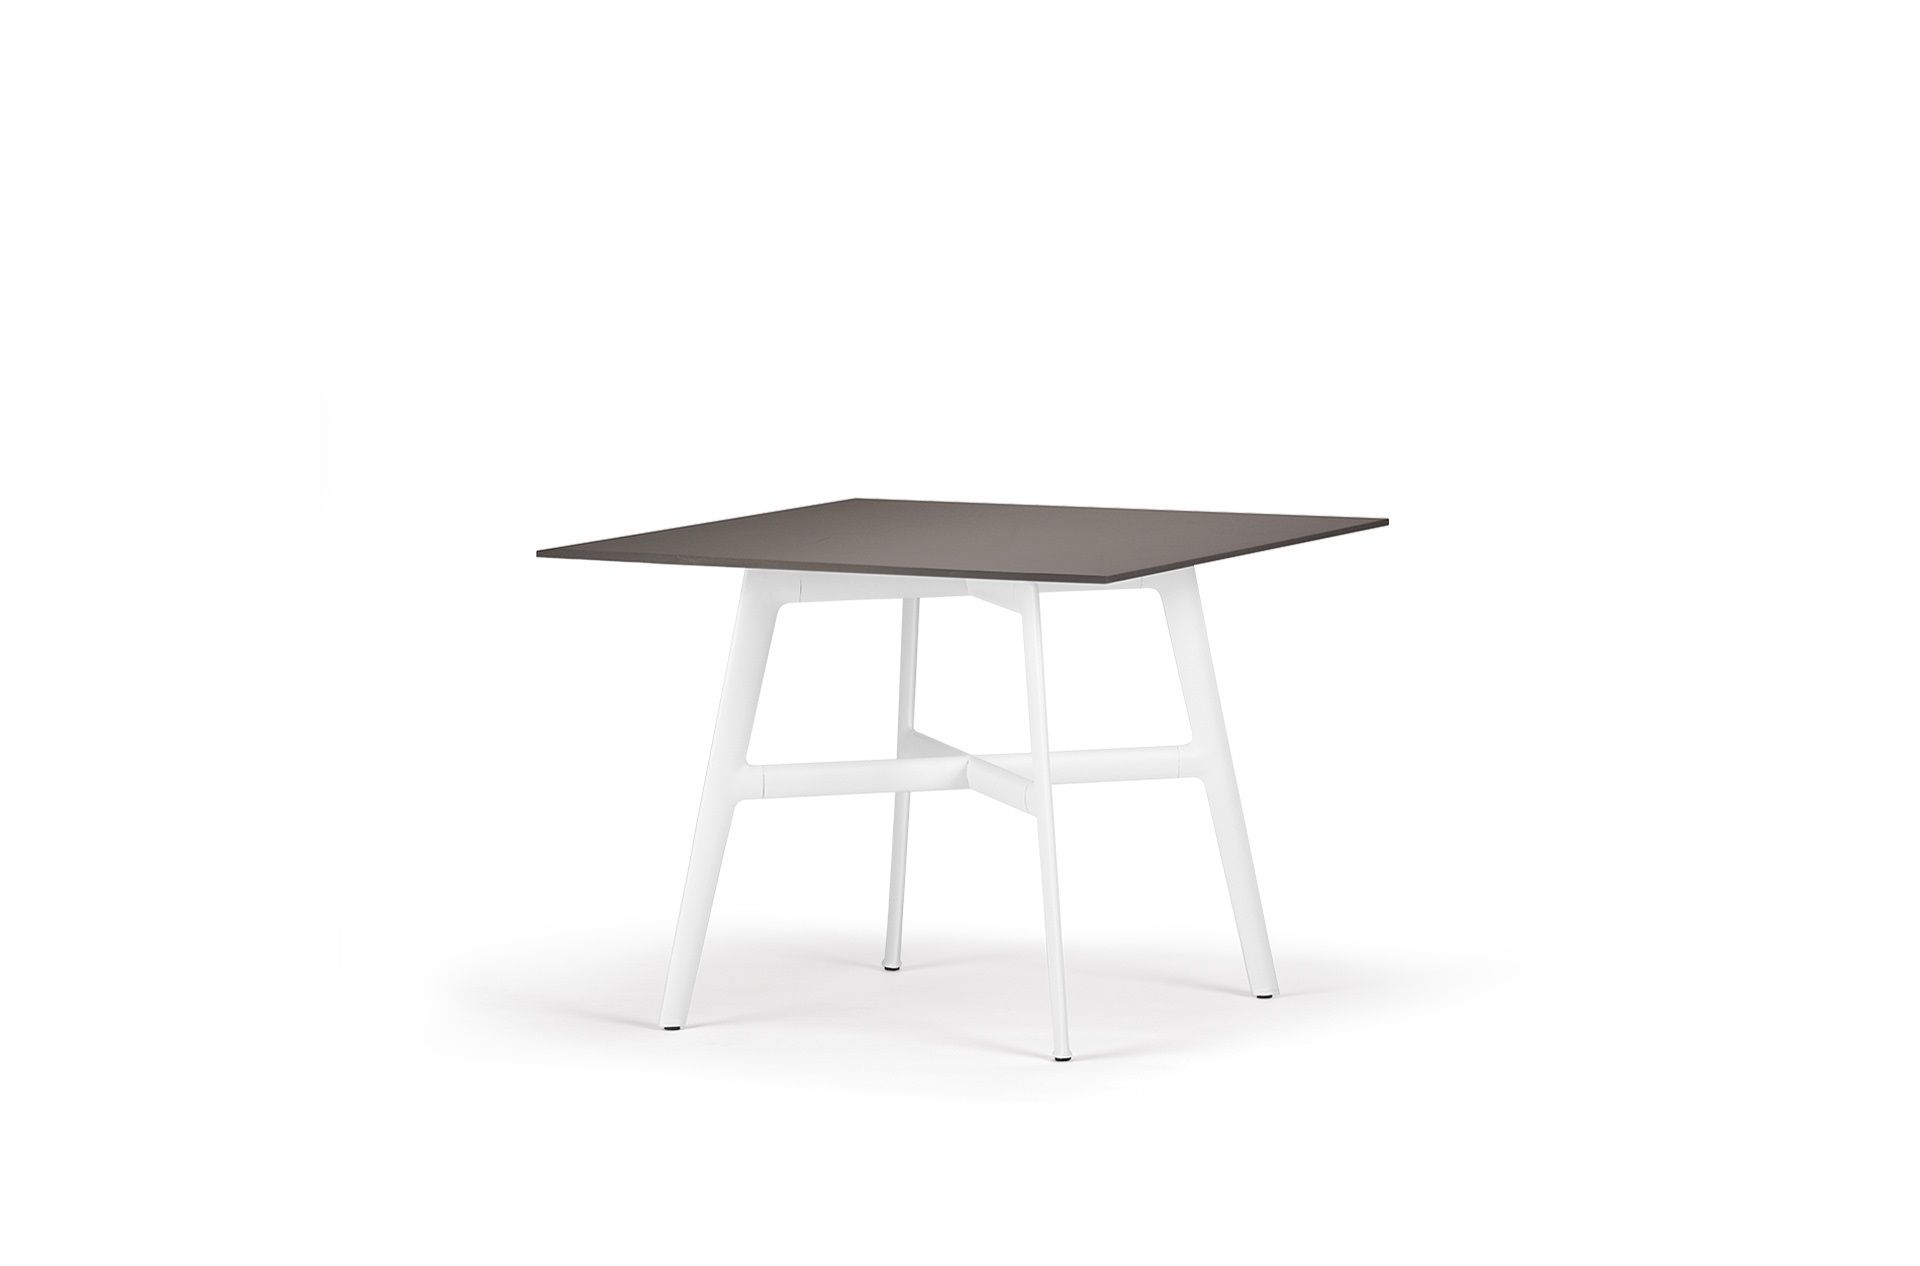 Dedon Sessel Dedon Seax Dining Table 品牌dedon 户外家具品牌 Pinterest